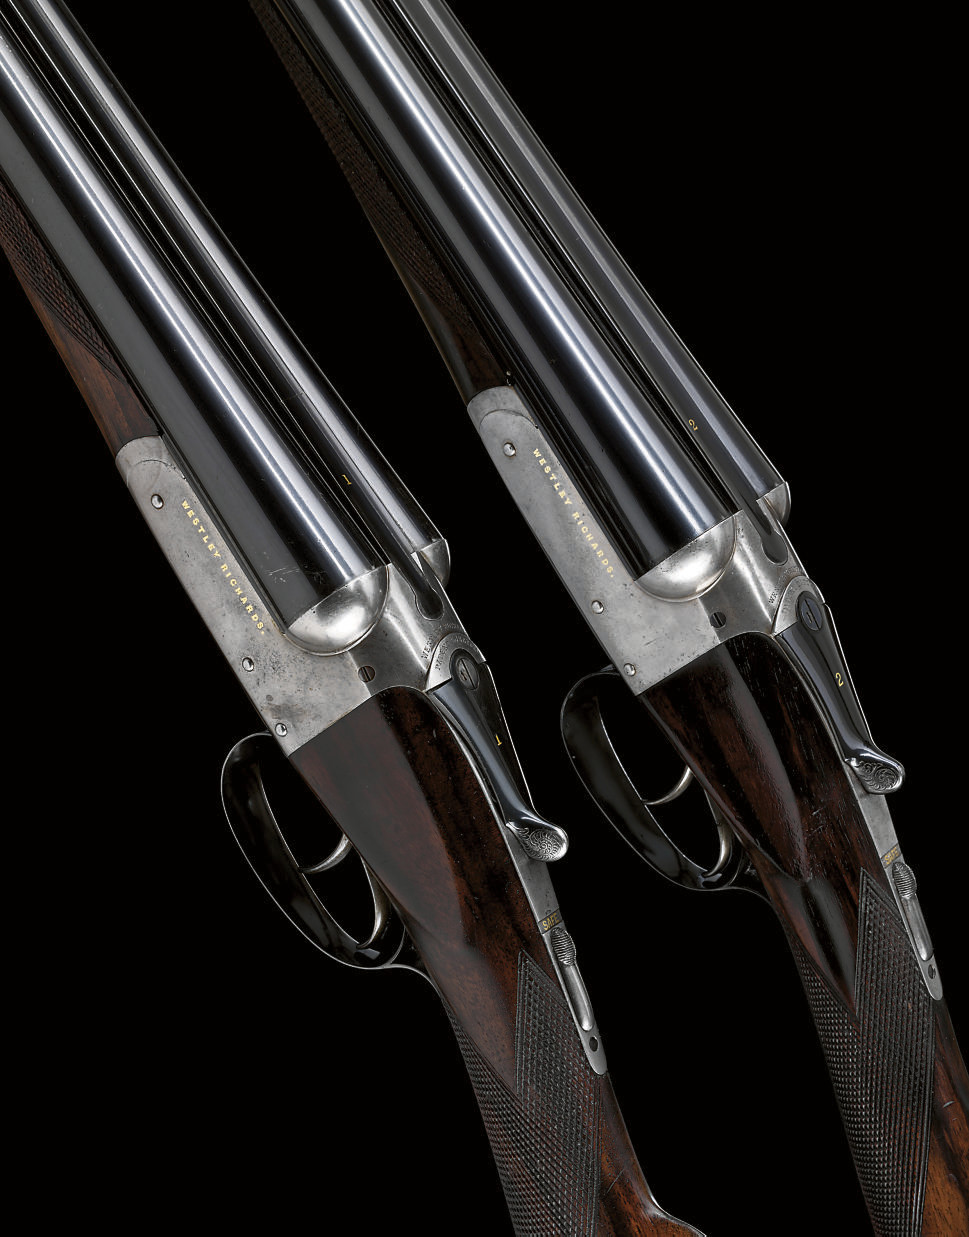 AN EARLY PAIR OF 12-BORE 'GOLD NAME' BOXLOCK EJECTOR GUNS BY WESTLEY RICHARDS, NO. 6706/7